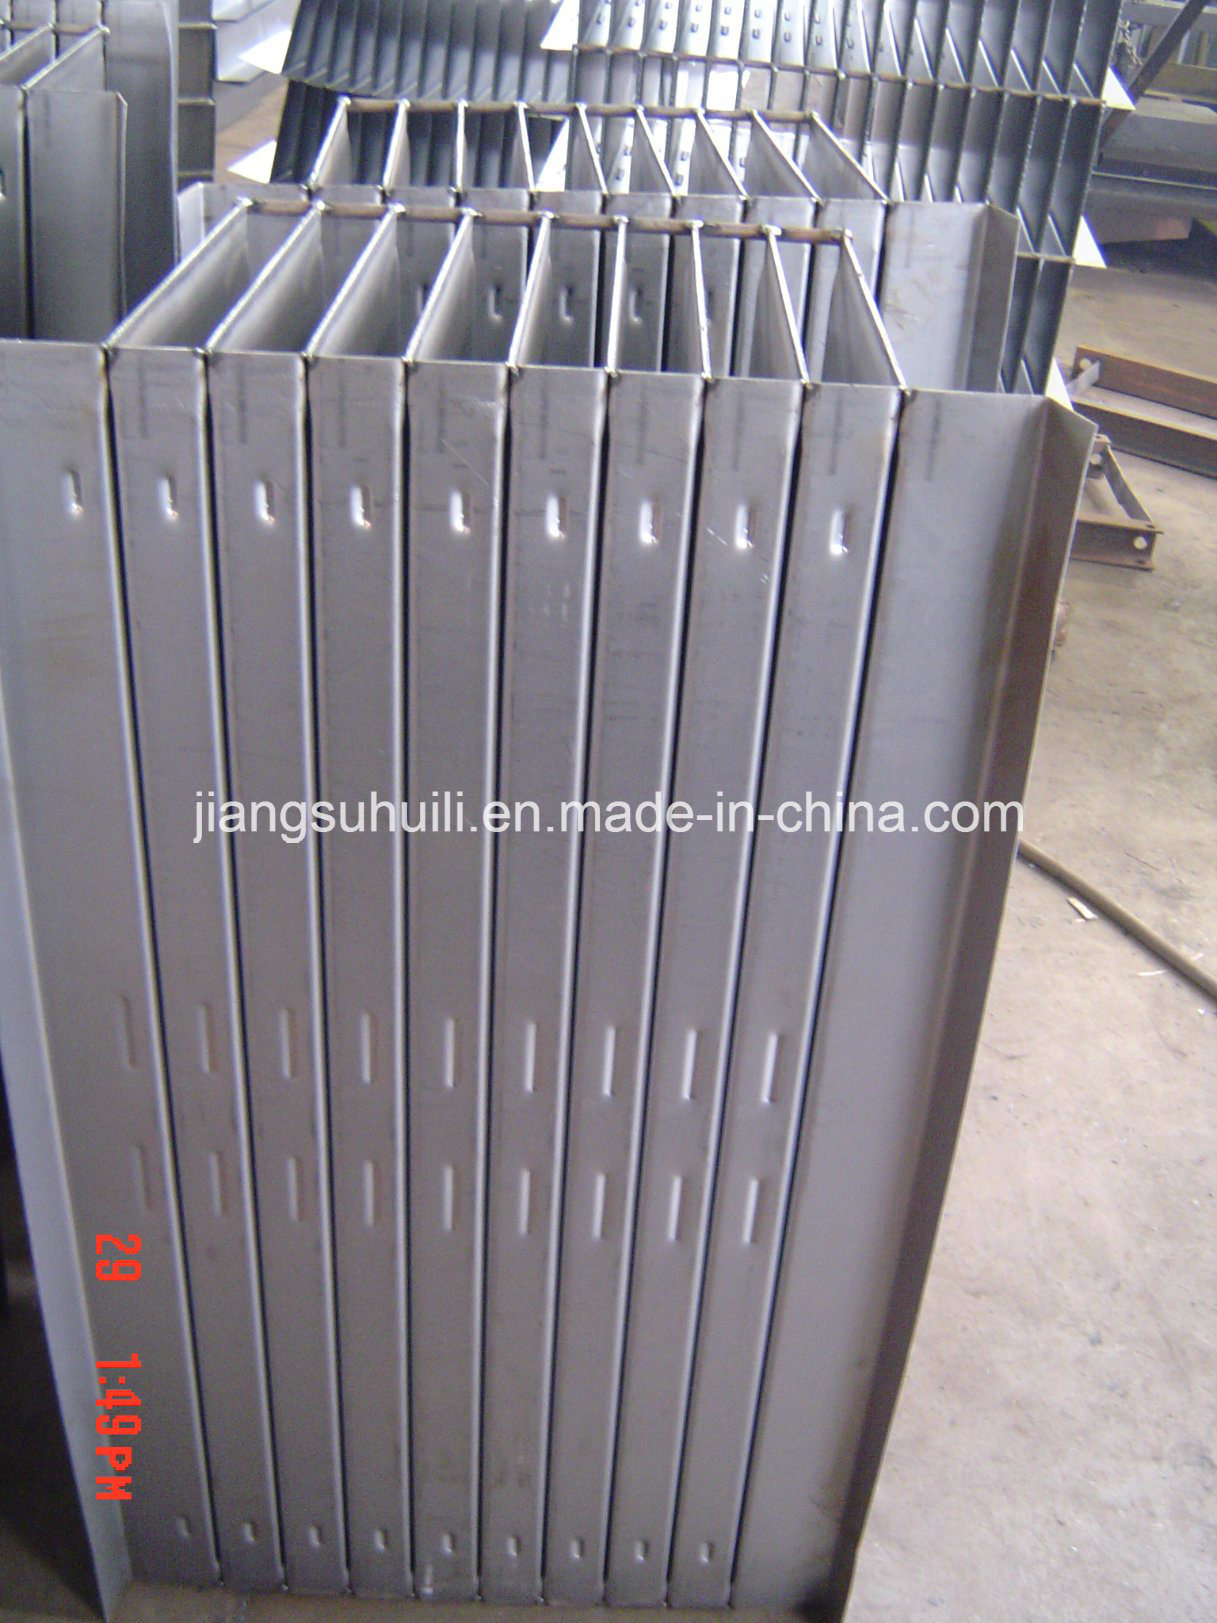 Transformer Tank Corrugated Fin Wall